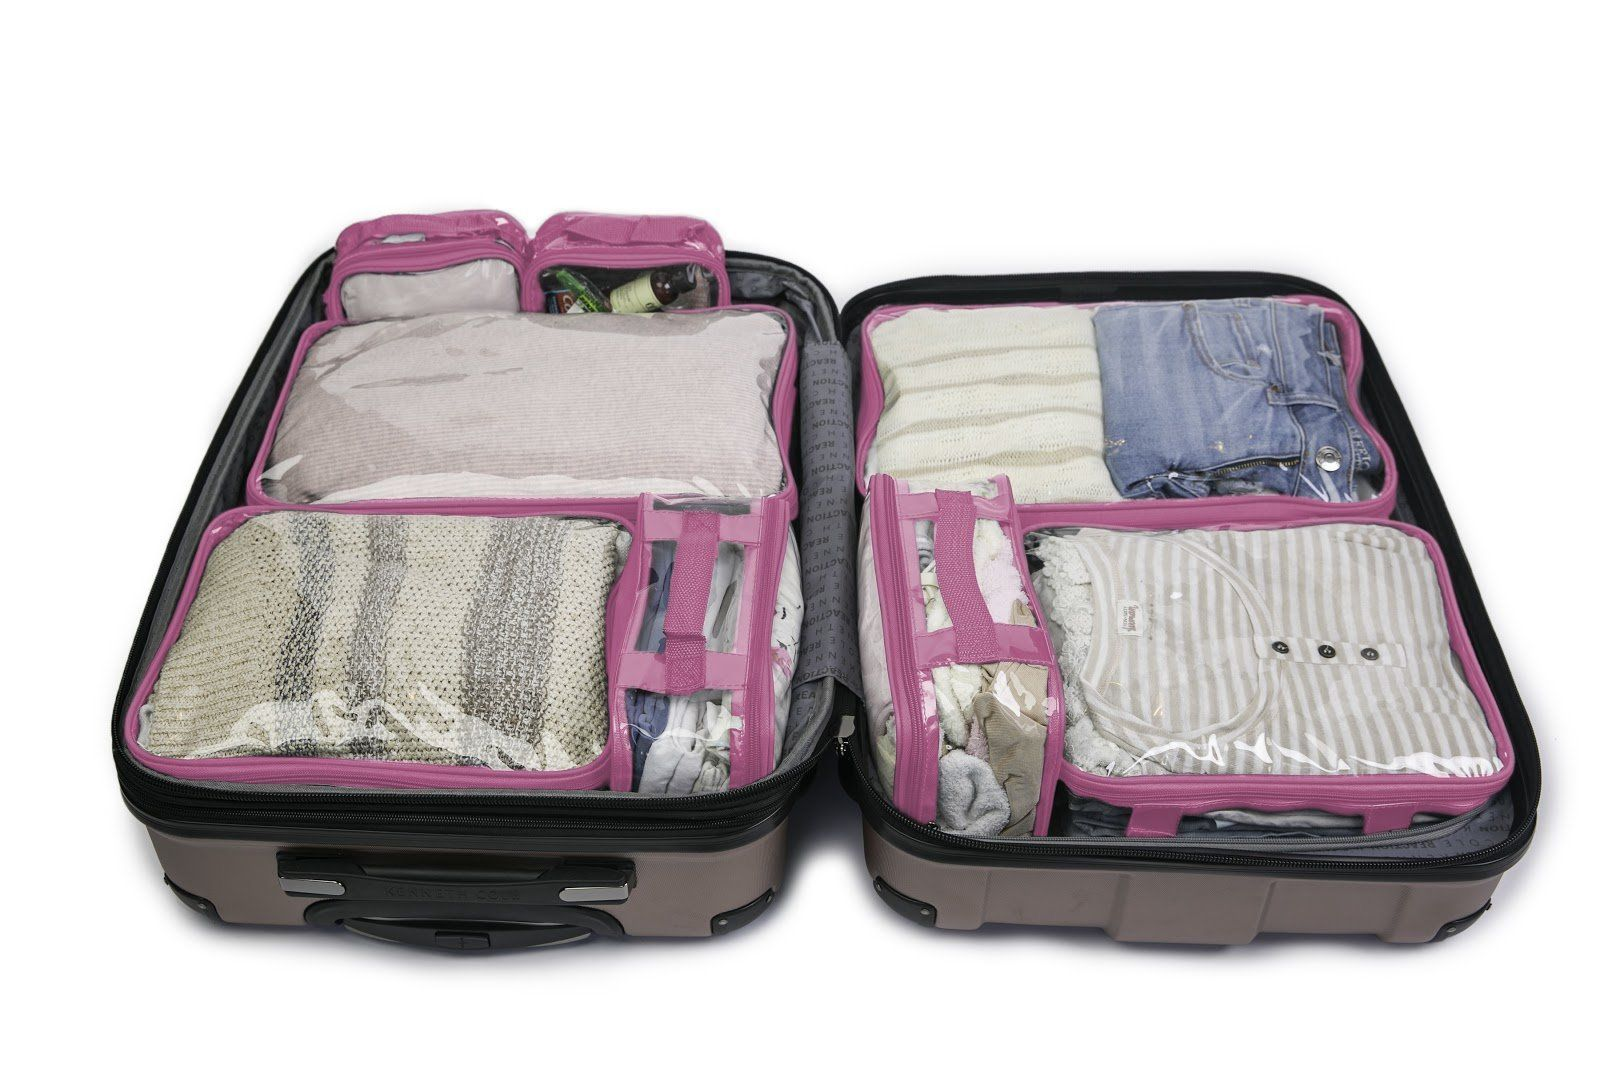 How to Pack for College: Best Tips And To Do's for Moms #collegepackinglist The Only Ultimate College Packing List You Need!   Download this free complete college packing list or use our printable college packing list for easy checking off! This college freshman packing list covers all the items you'll need for your dorm, bedroom, bathroom, and even kitchen. Don't forget the little things! #collegepackinglist